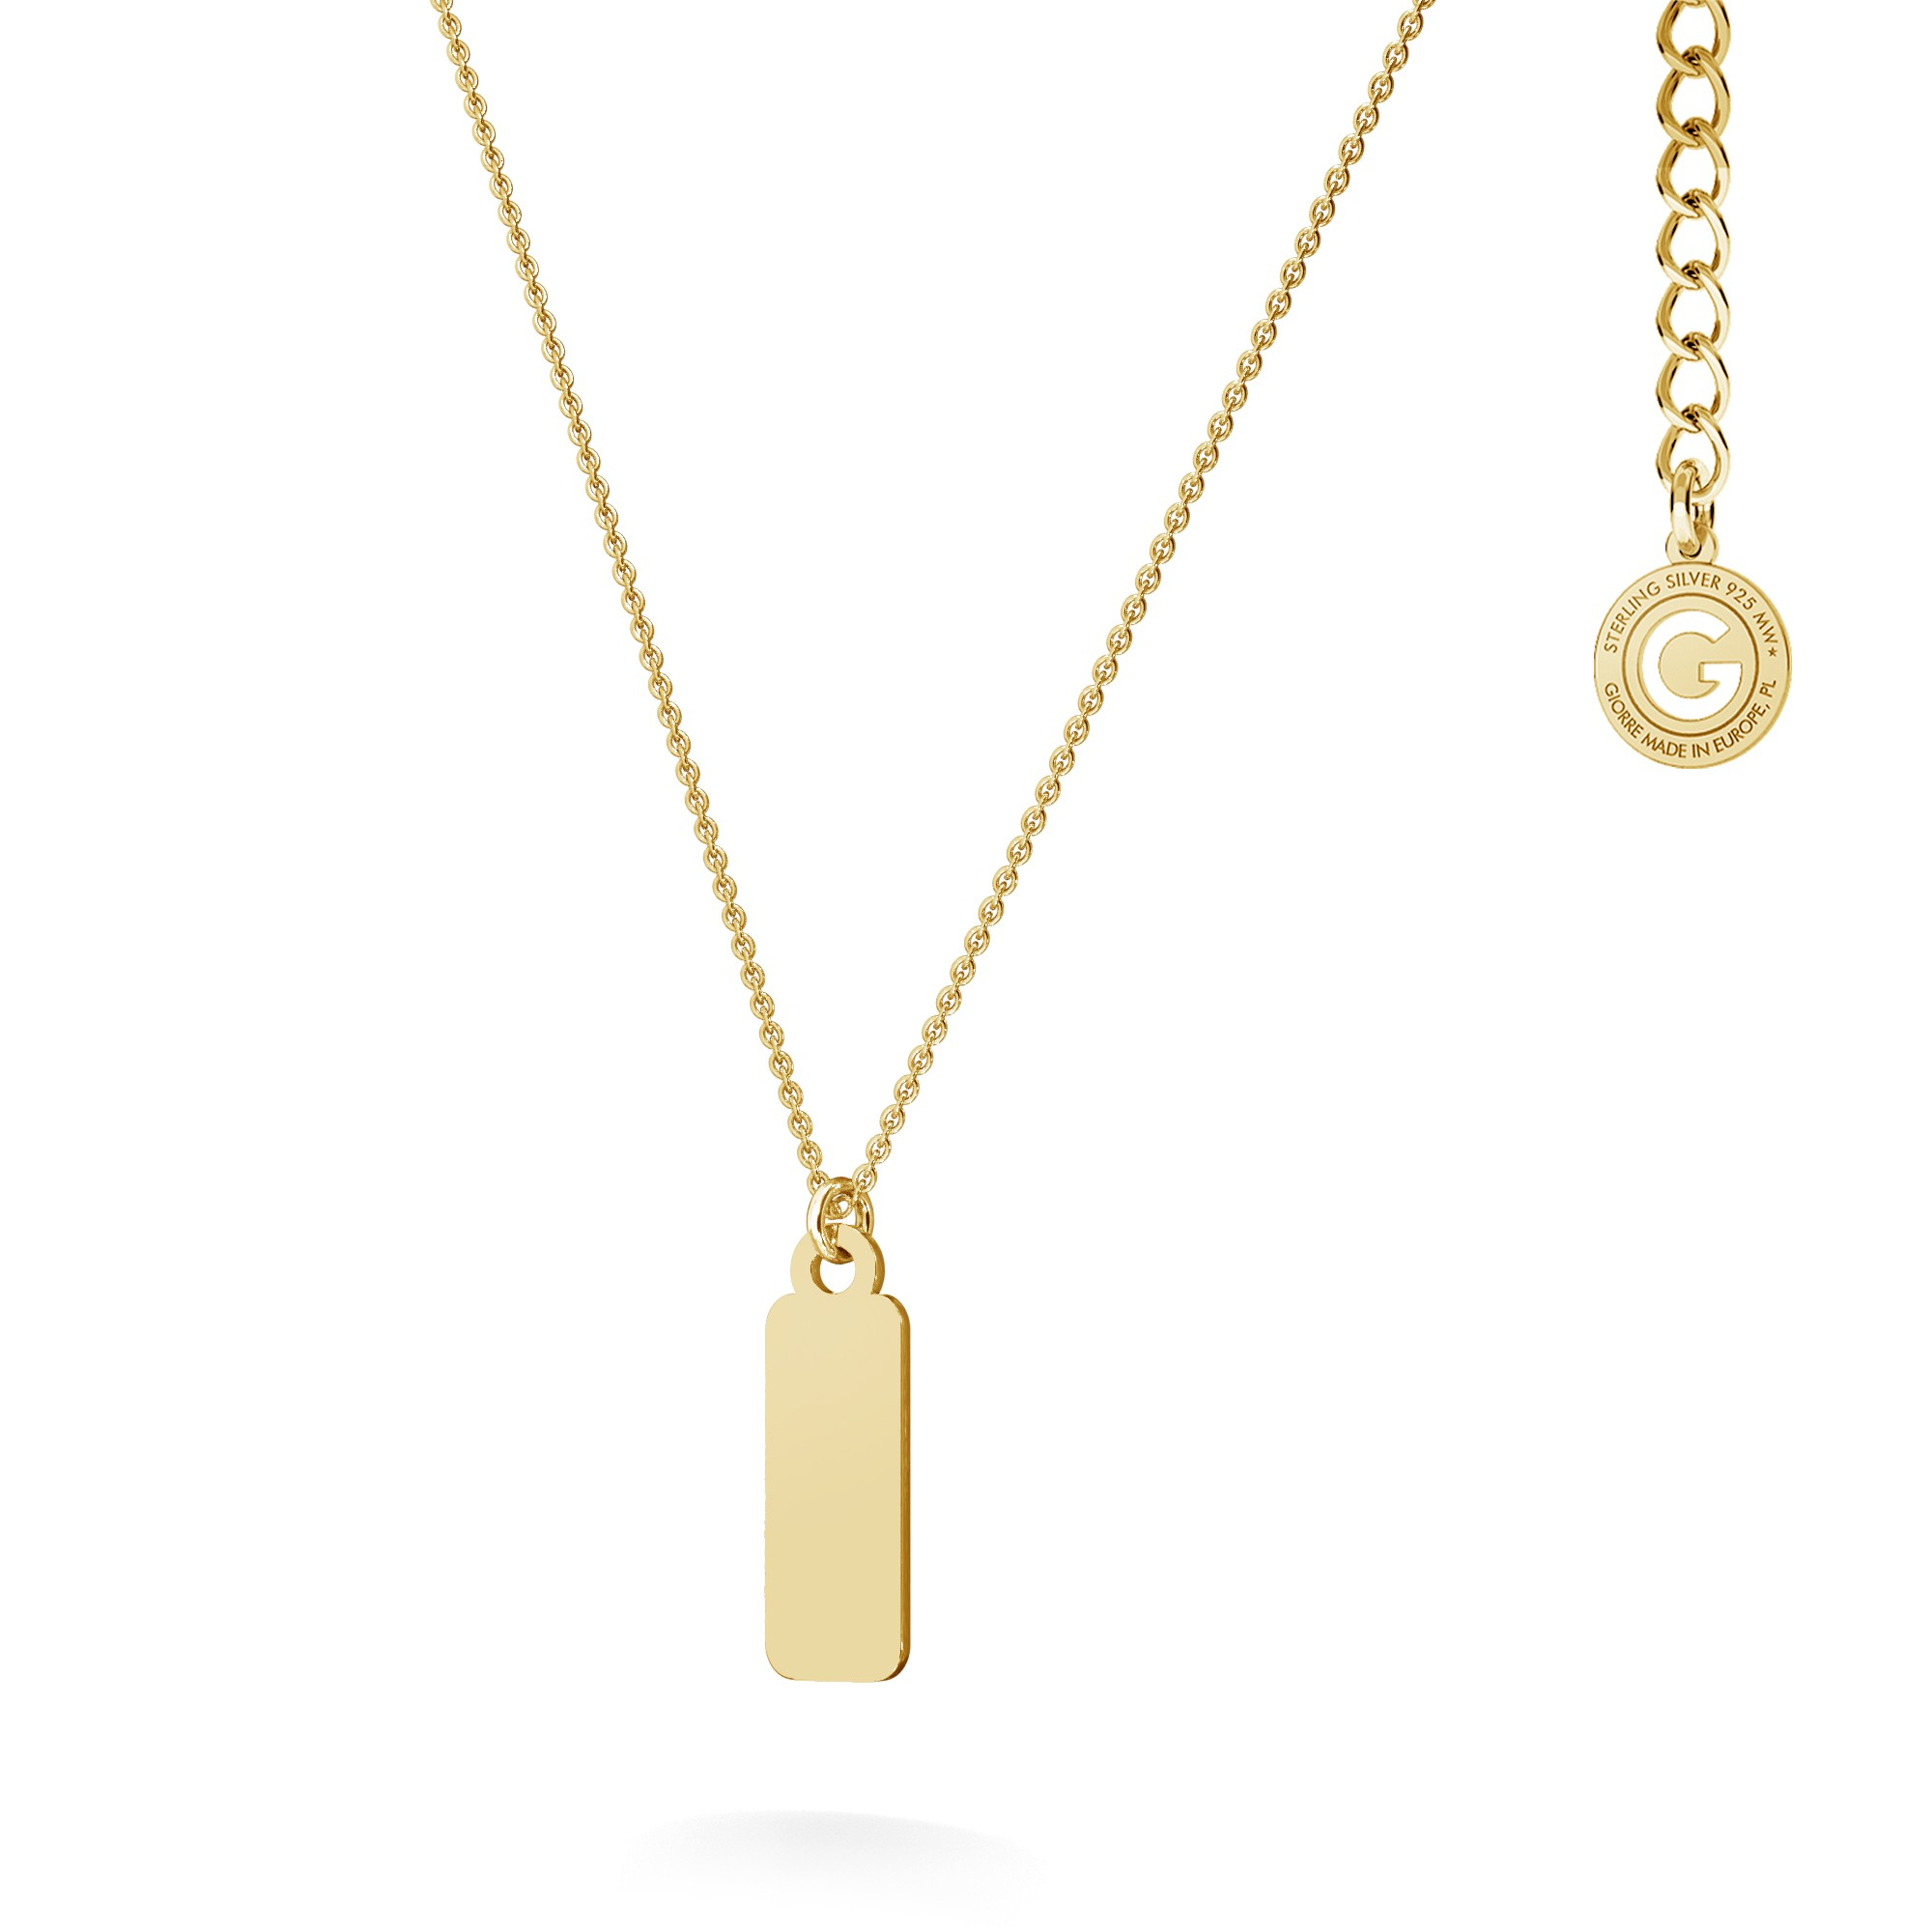 Simple tag with your name necklace sterling silver 925